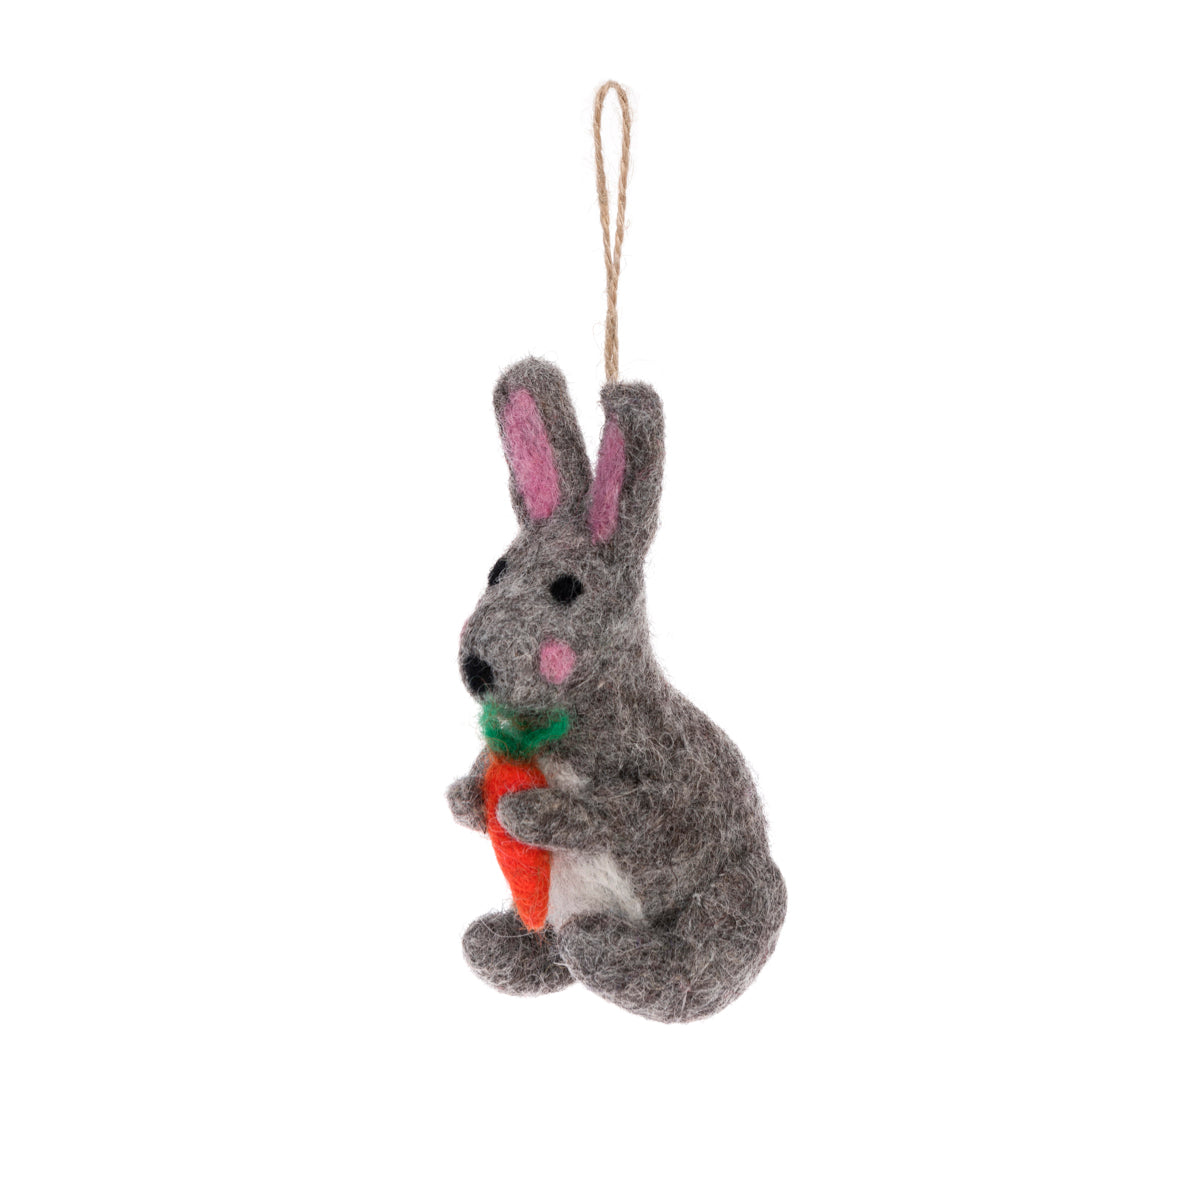 Hare Felt Easter Decoration by Sophie Allport